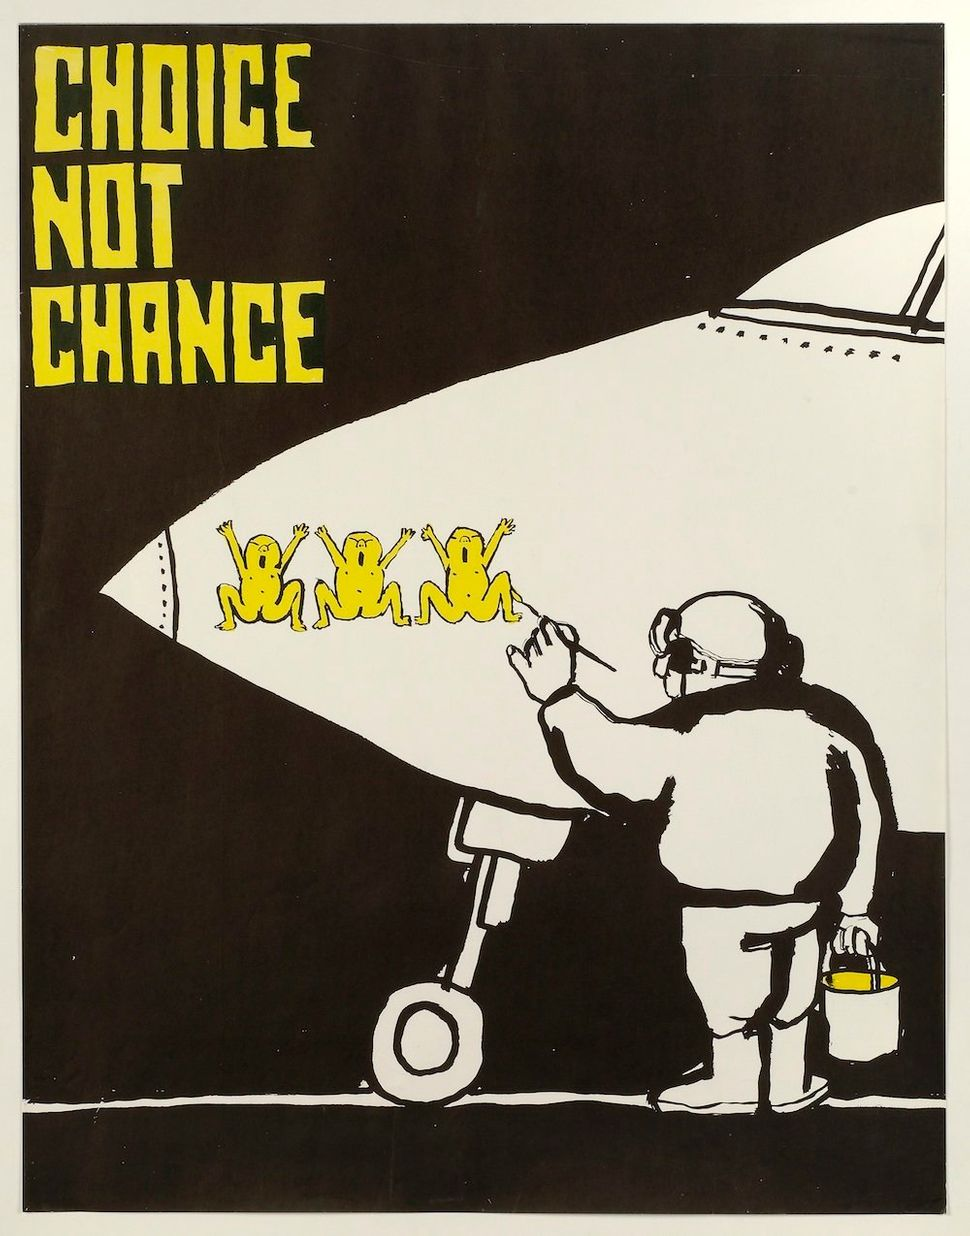 Choice Not Chance, 1967 (political poster) 21 x 26 5/8 inches (53.3 x 67.6 cm) Collection Rennert's Gallery, New York